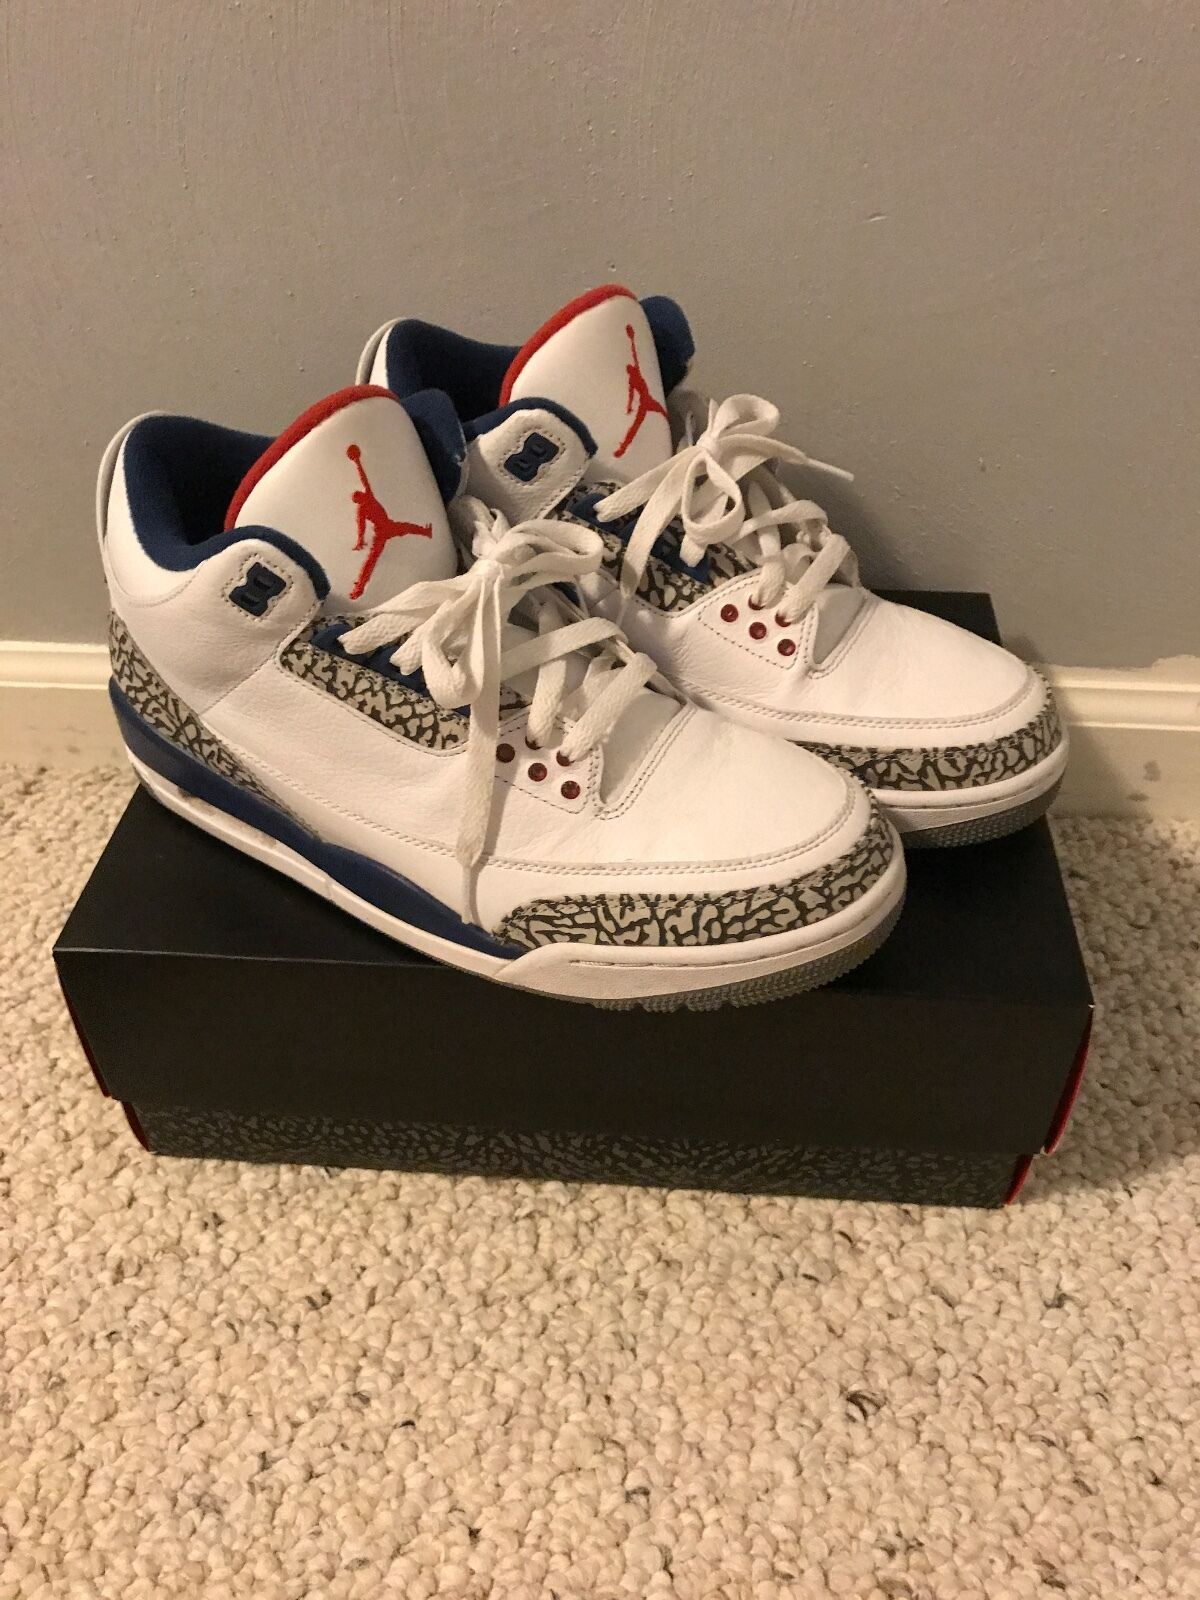 2018 Nike Air Jordan 3 retro popular og confortable el mas popular retro de zapatos para hombres y mujeres dfac1c